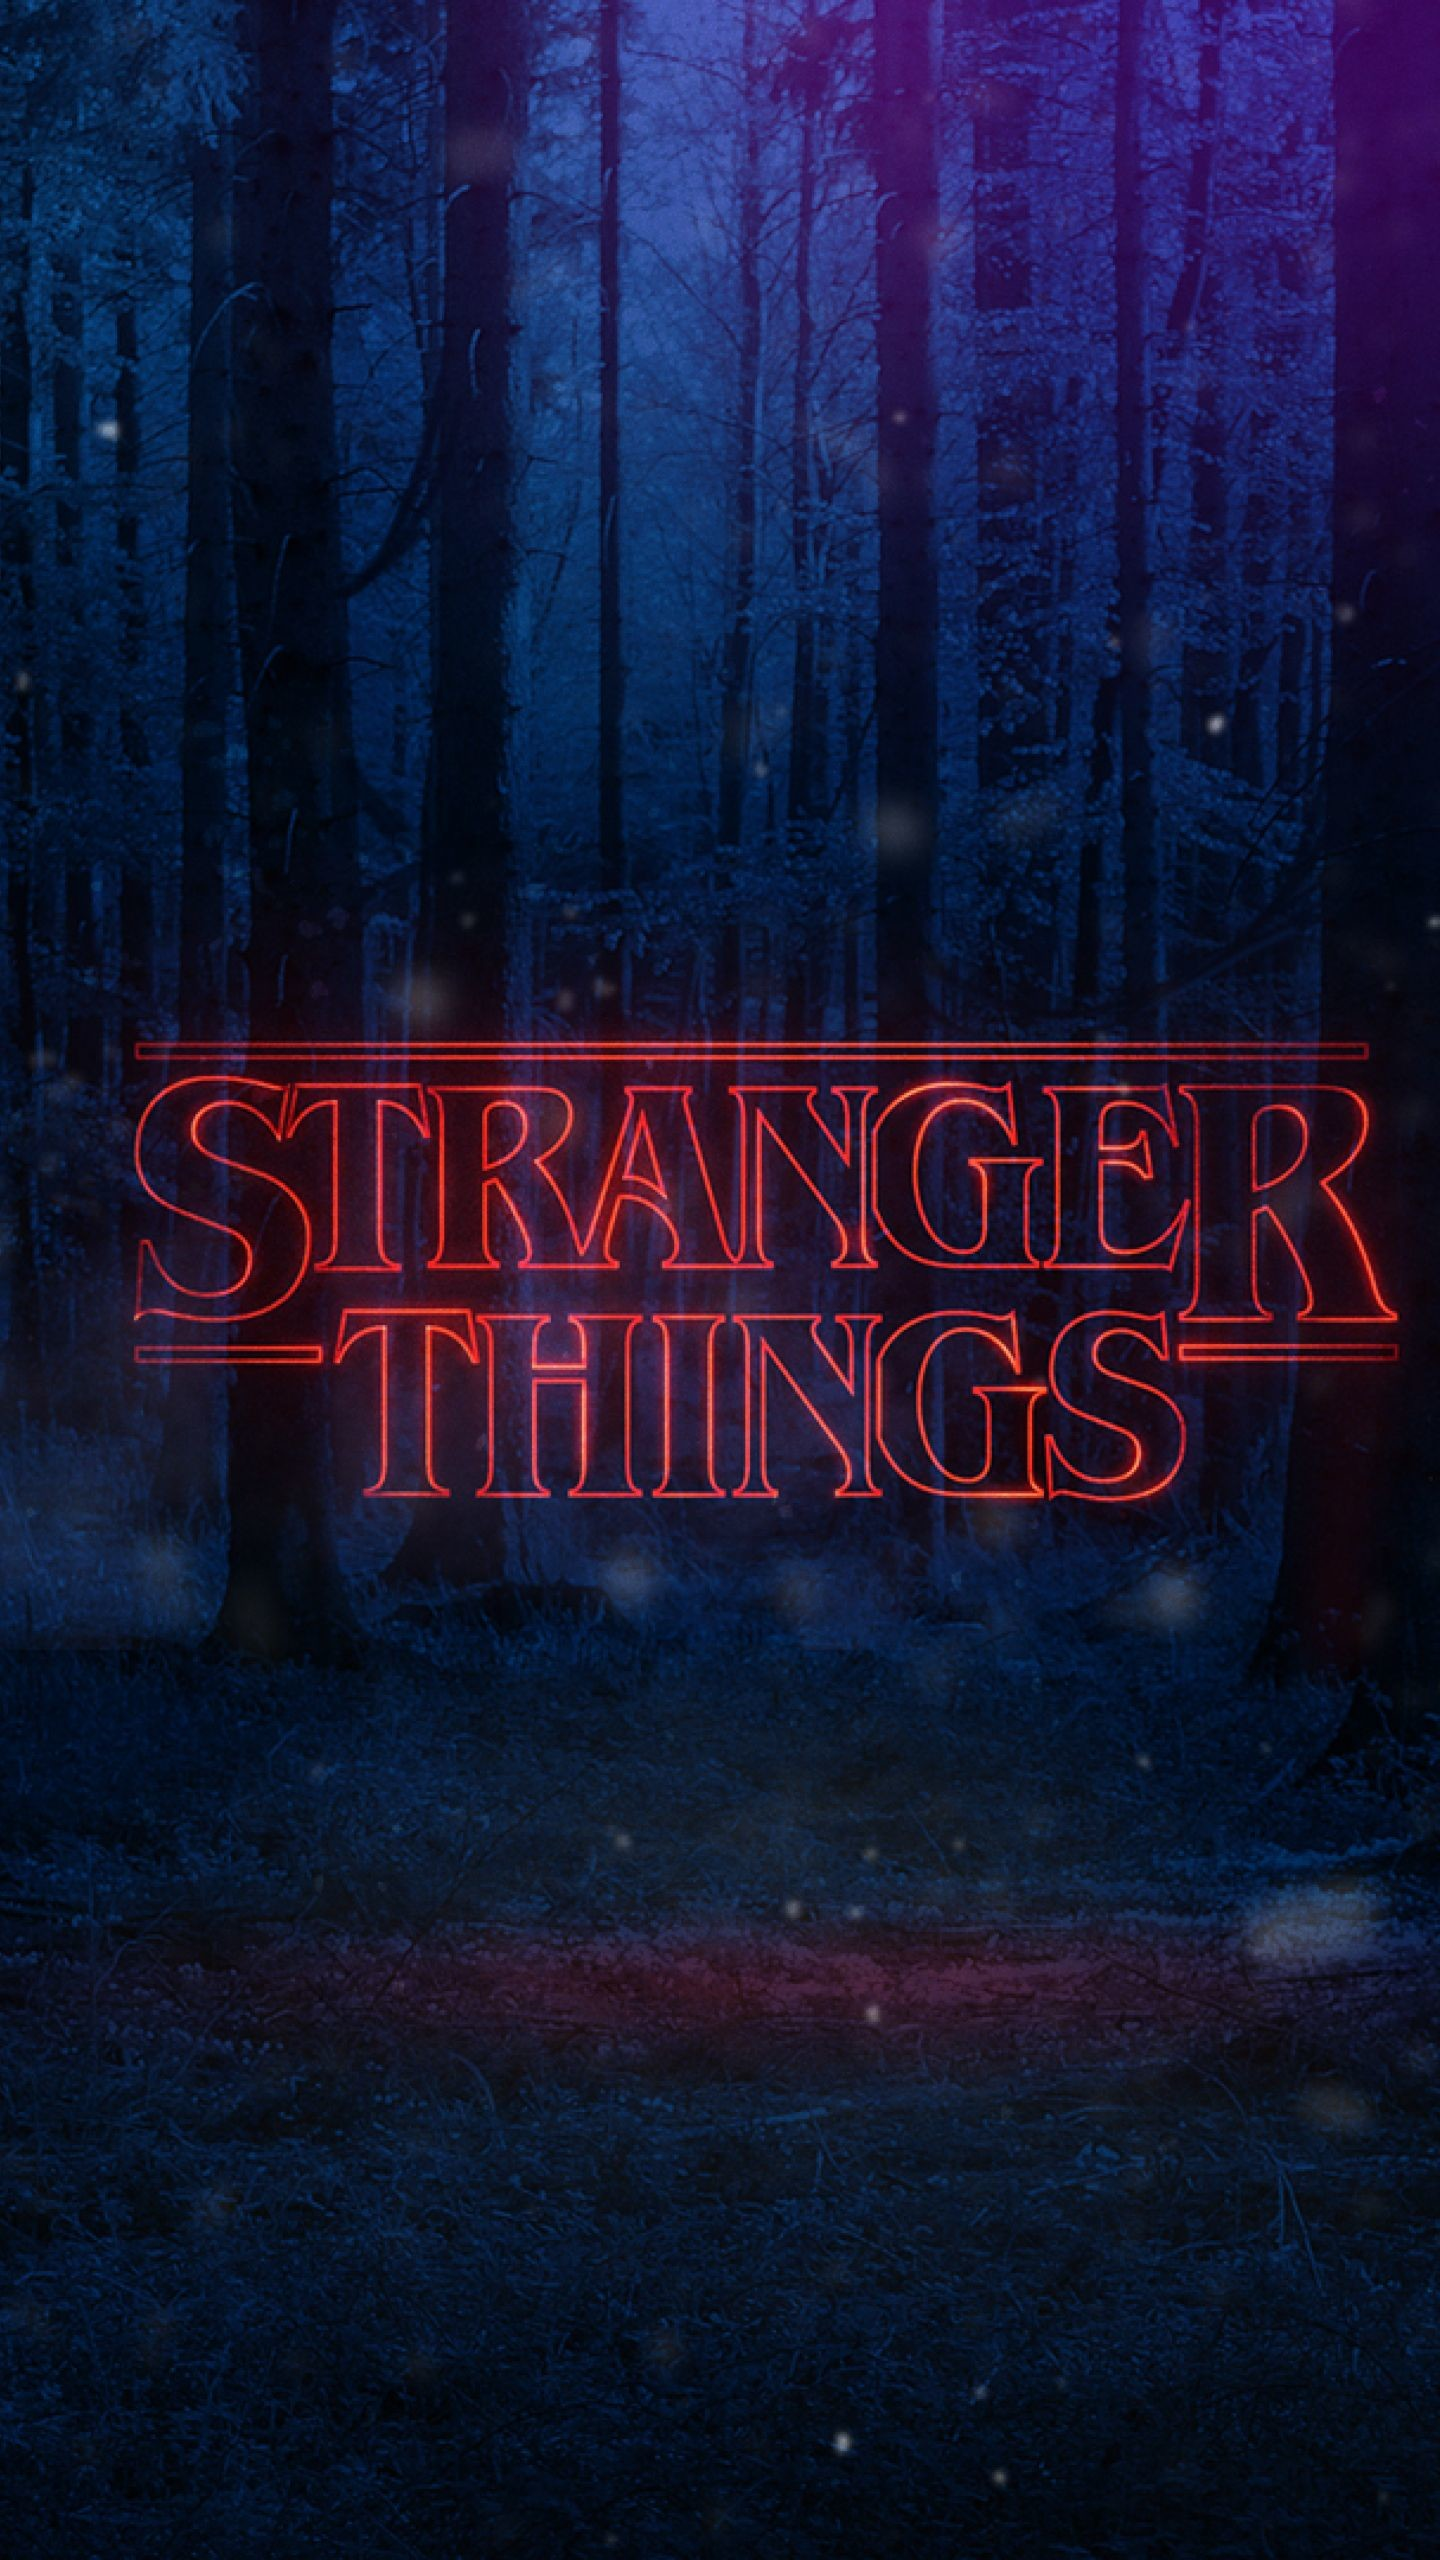 Stranger Things 1080p Wallpapers Posted By Ethan Anderson